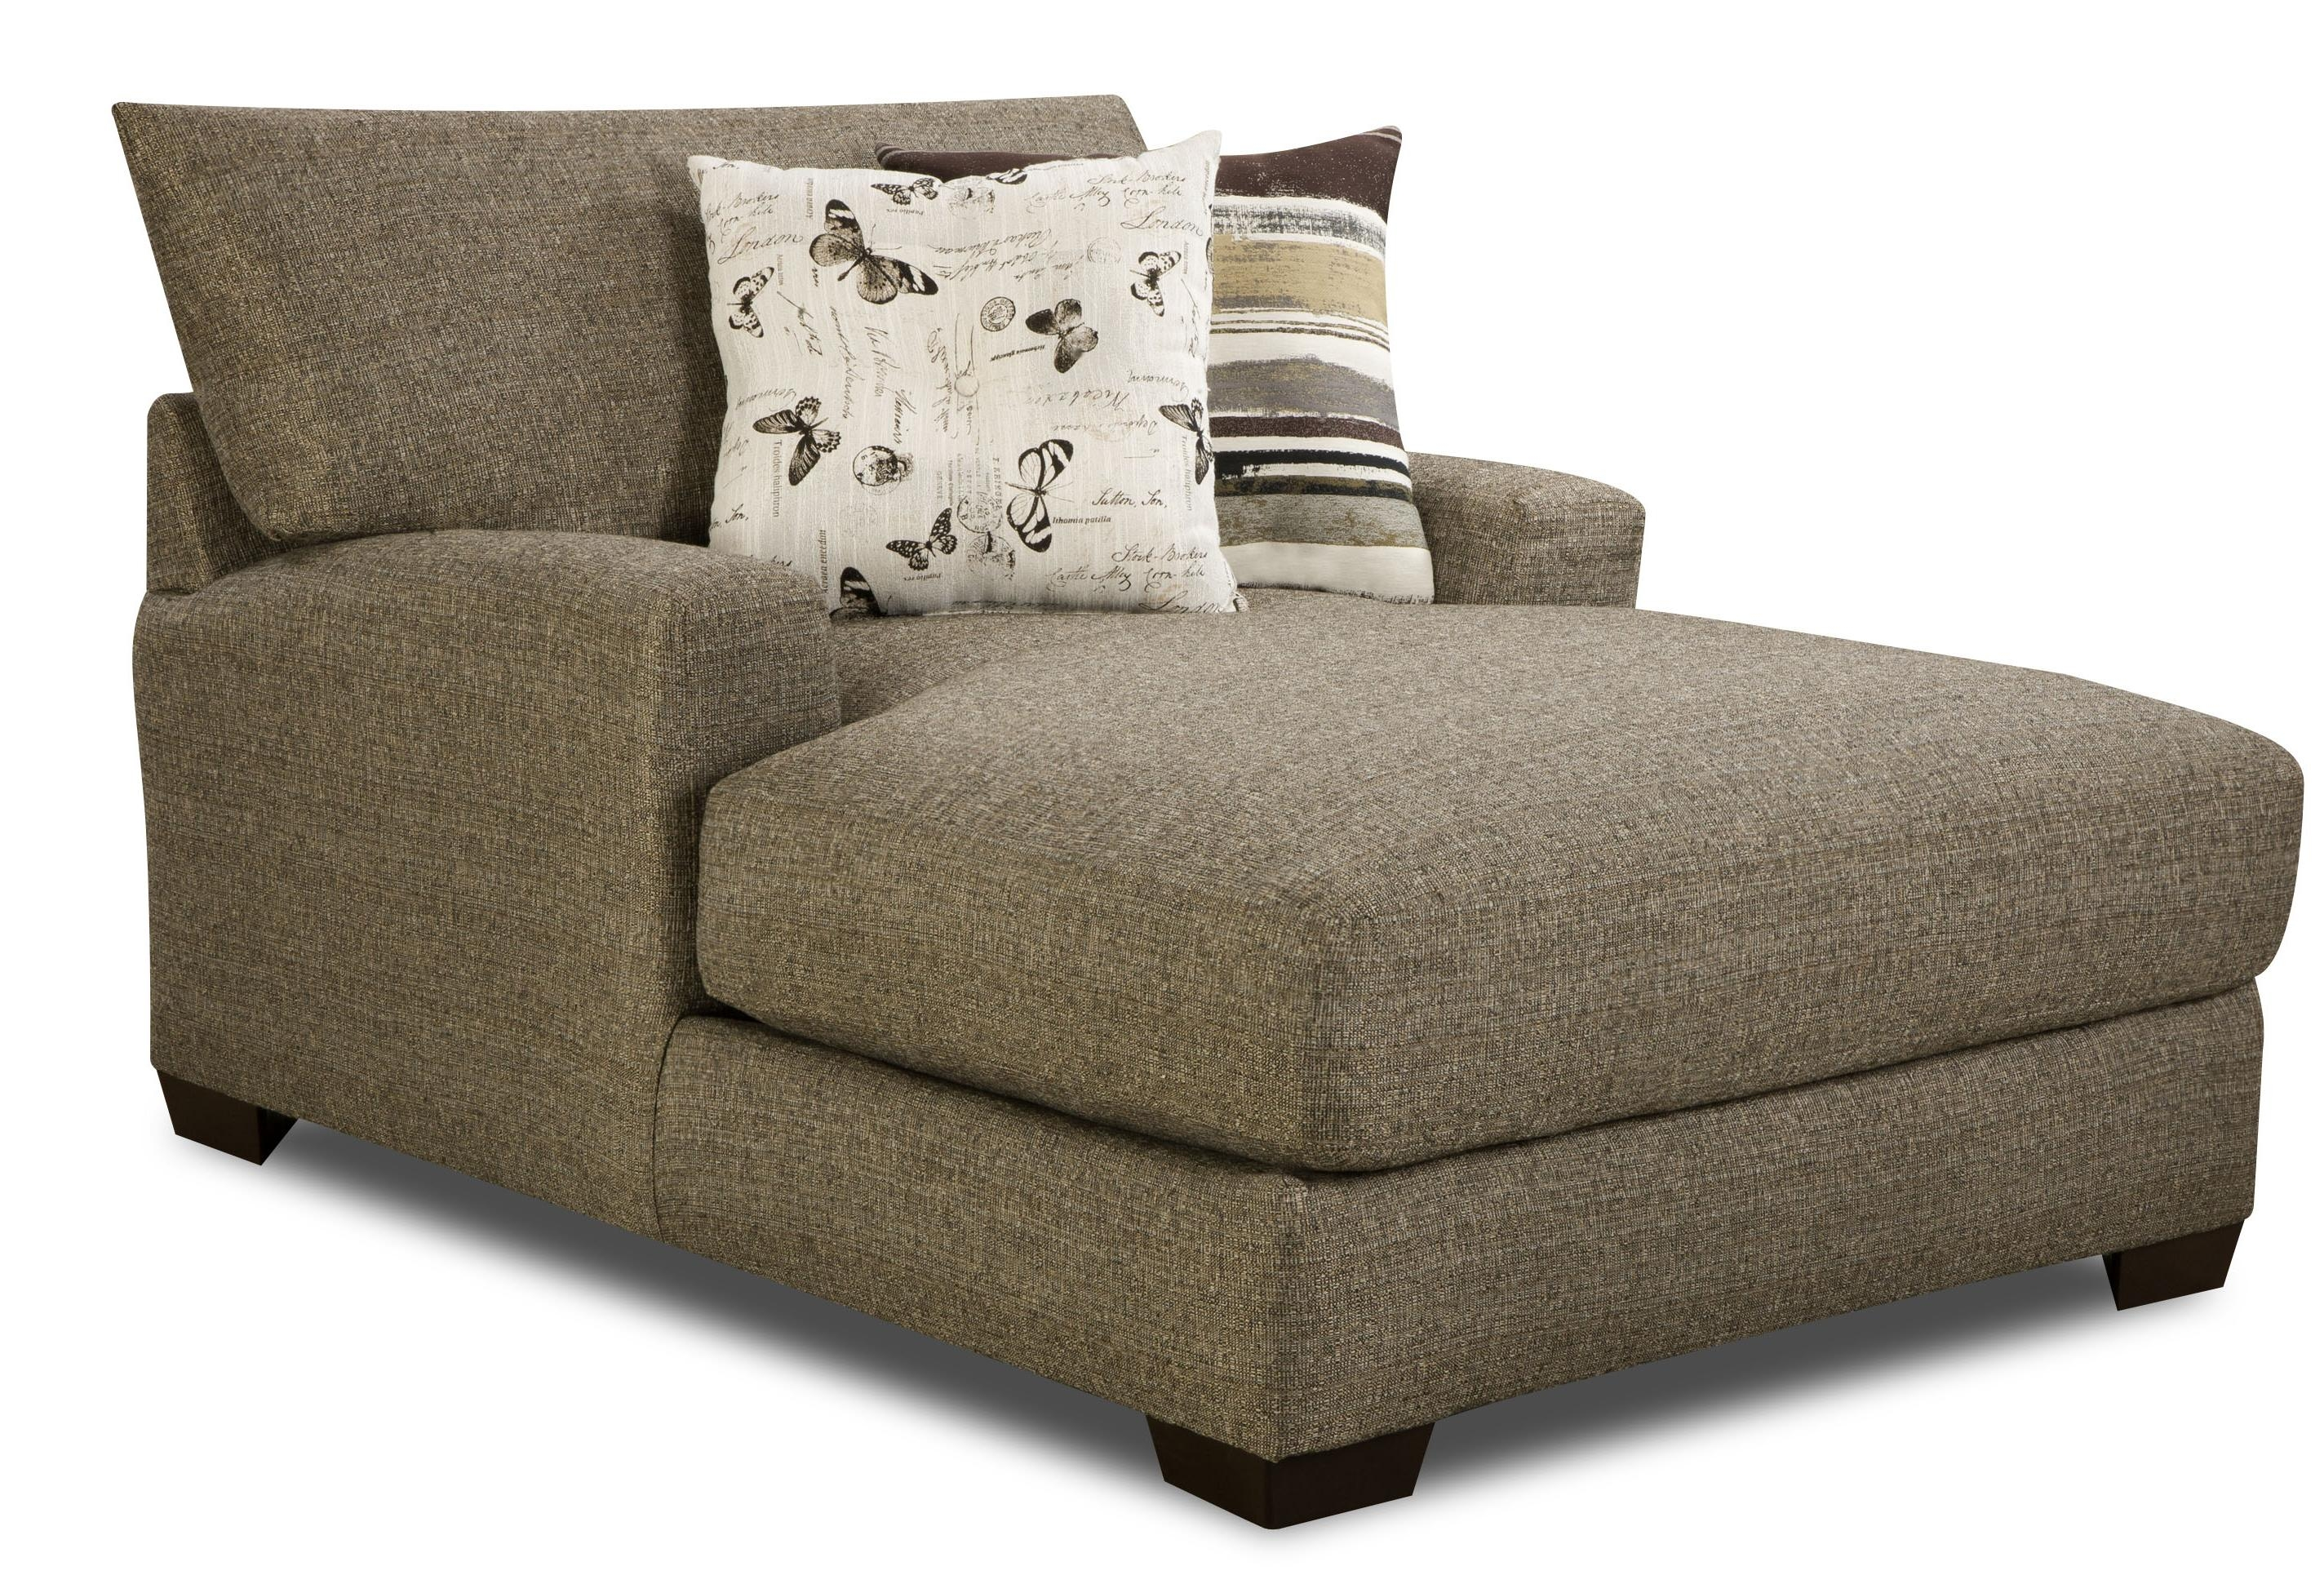 Furniture Microfiber Chaise Lounge For Comfortable Sofa Design Pertaining To Sofa Chairs For Bedroom (Image 11 of 15)